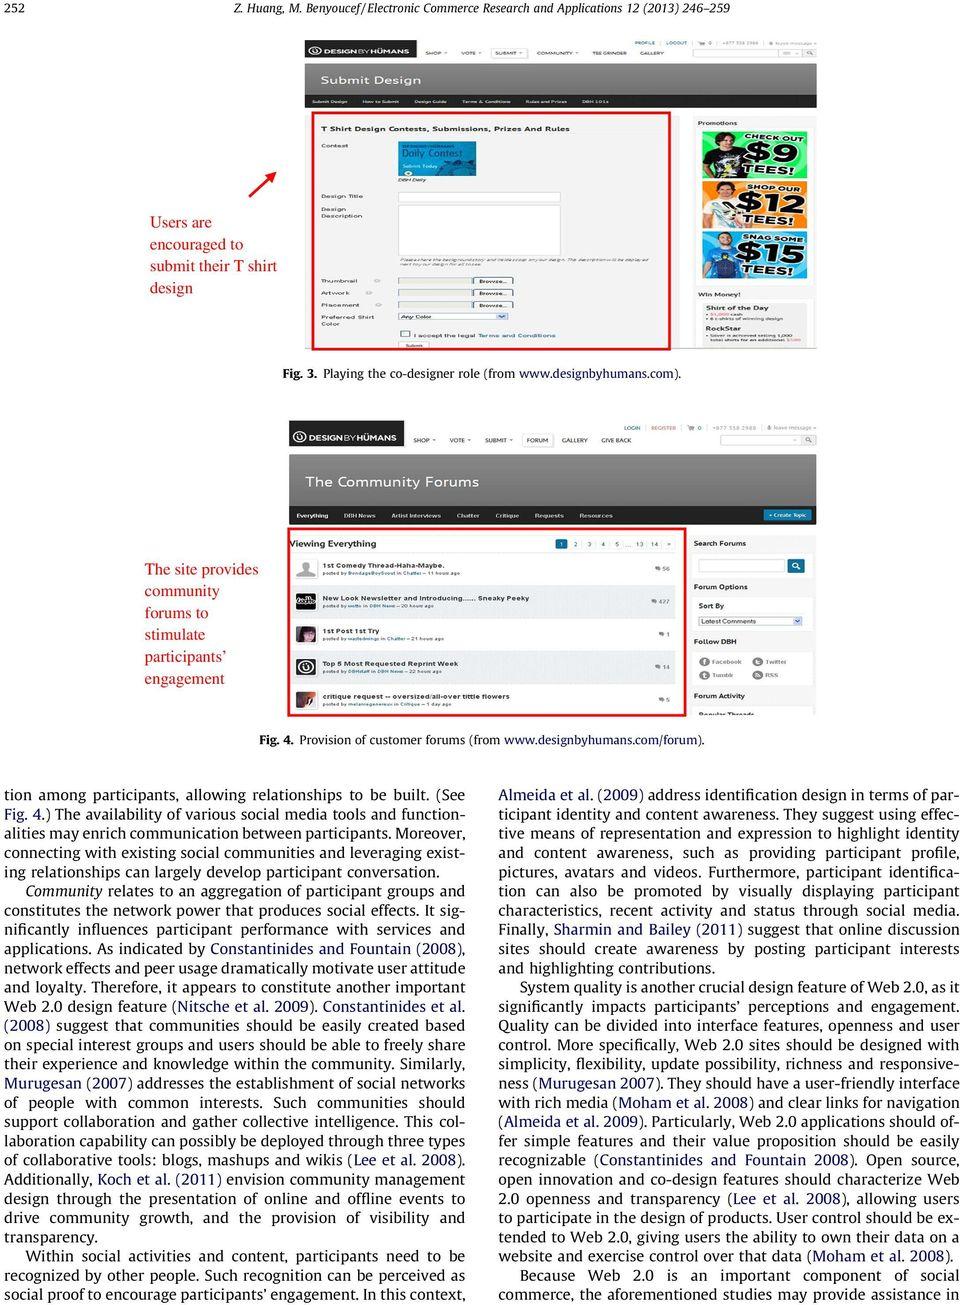 tion among articiants, allowing relationshis to be built. (See Fig. 4.) The availability of various social media tools and functionalities may enrich communication between articiants.